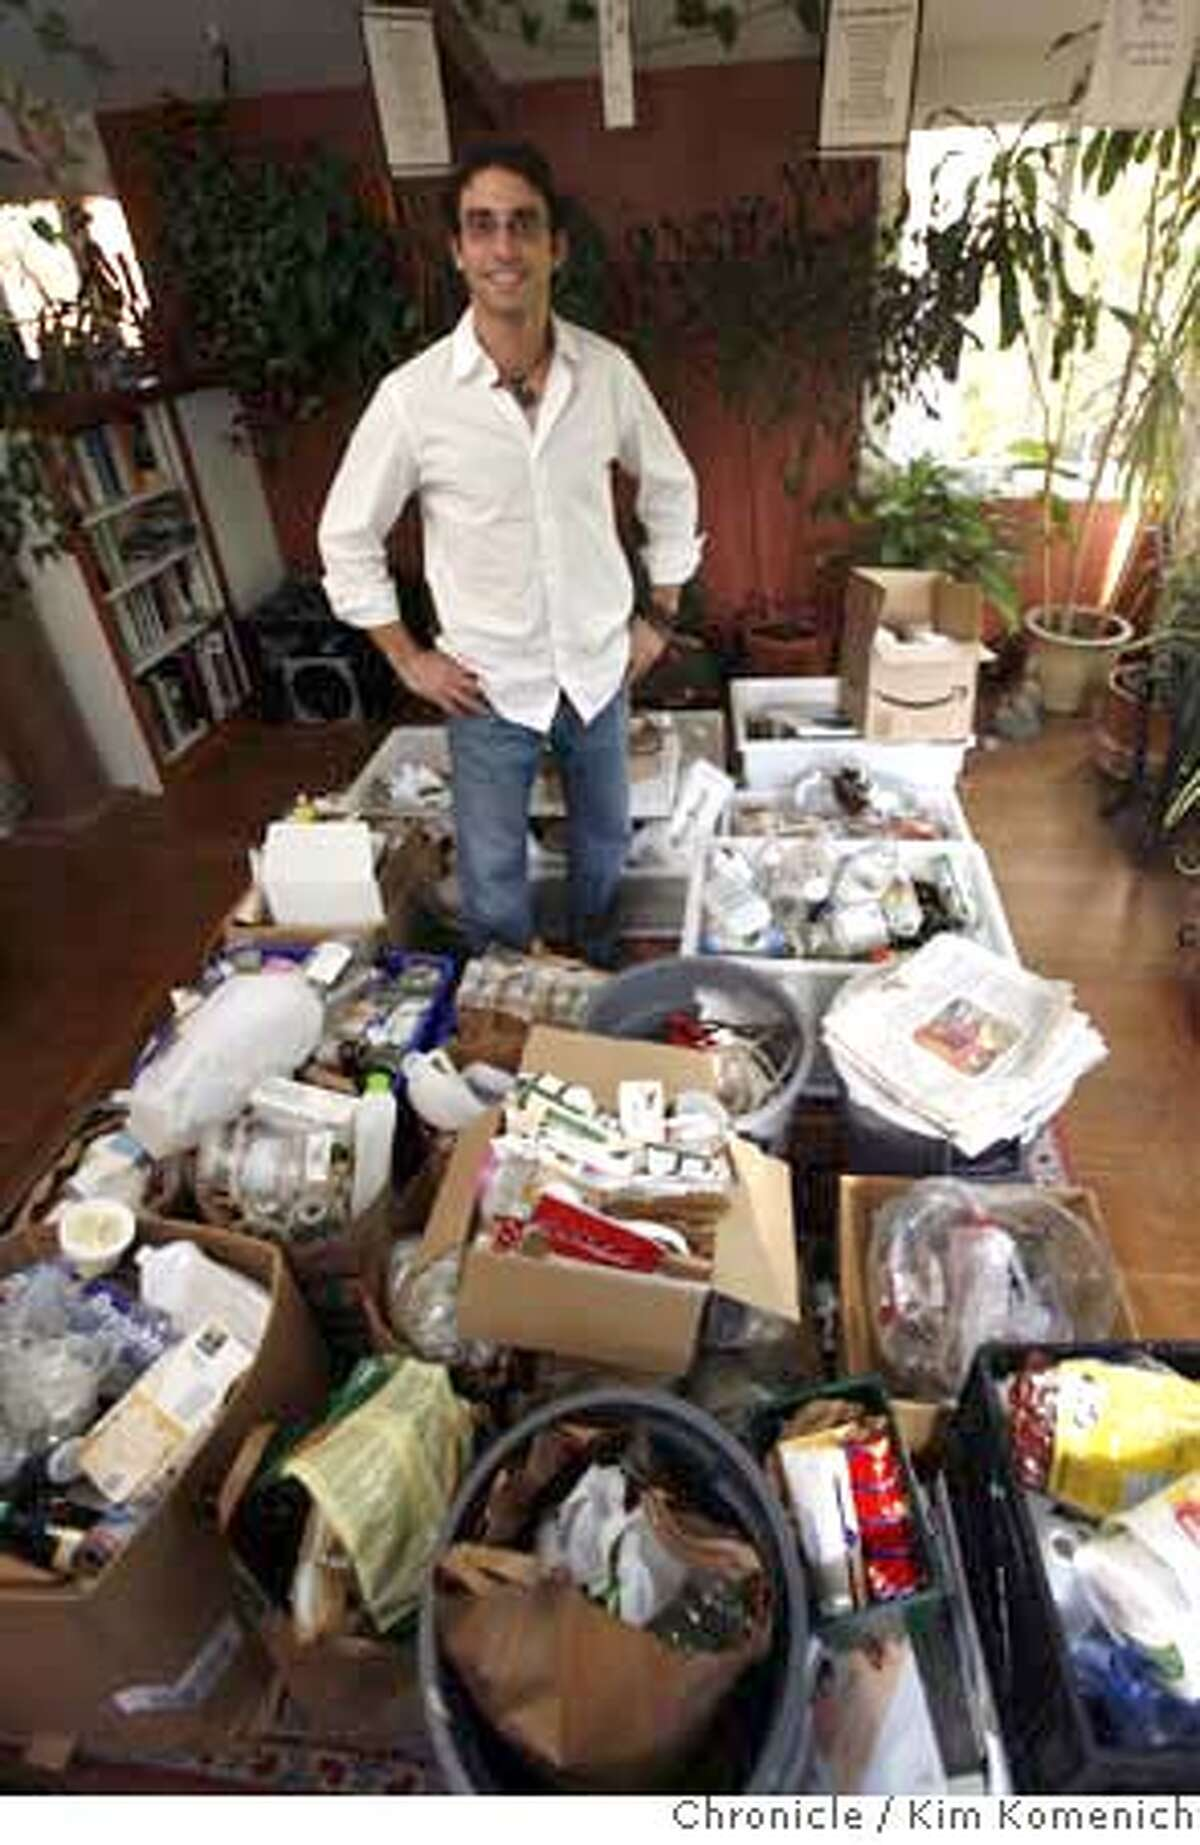 TRASHGUYXX_059_KK.JPG Ari Derfel of Berkeley has saved all of his trash and recycling for one year in an effort to see exactly how much waste one person generates in twelve months. December 4 marks the one-year anniversary of his personal project. He is sorting the stuff for a few days because he'd like to donate it to an artist who will make a statement piece out of it. Photo by Kim Komenich/The Chronicle **Ari Derfel MANDATORY CREDIT FOR PHOTOG AND SAN FRANCISCO CHRONICLE. NO SALES- MAGS OUT.